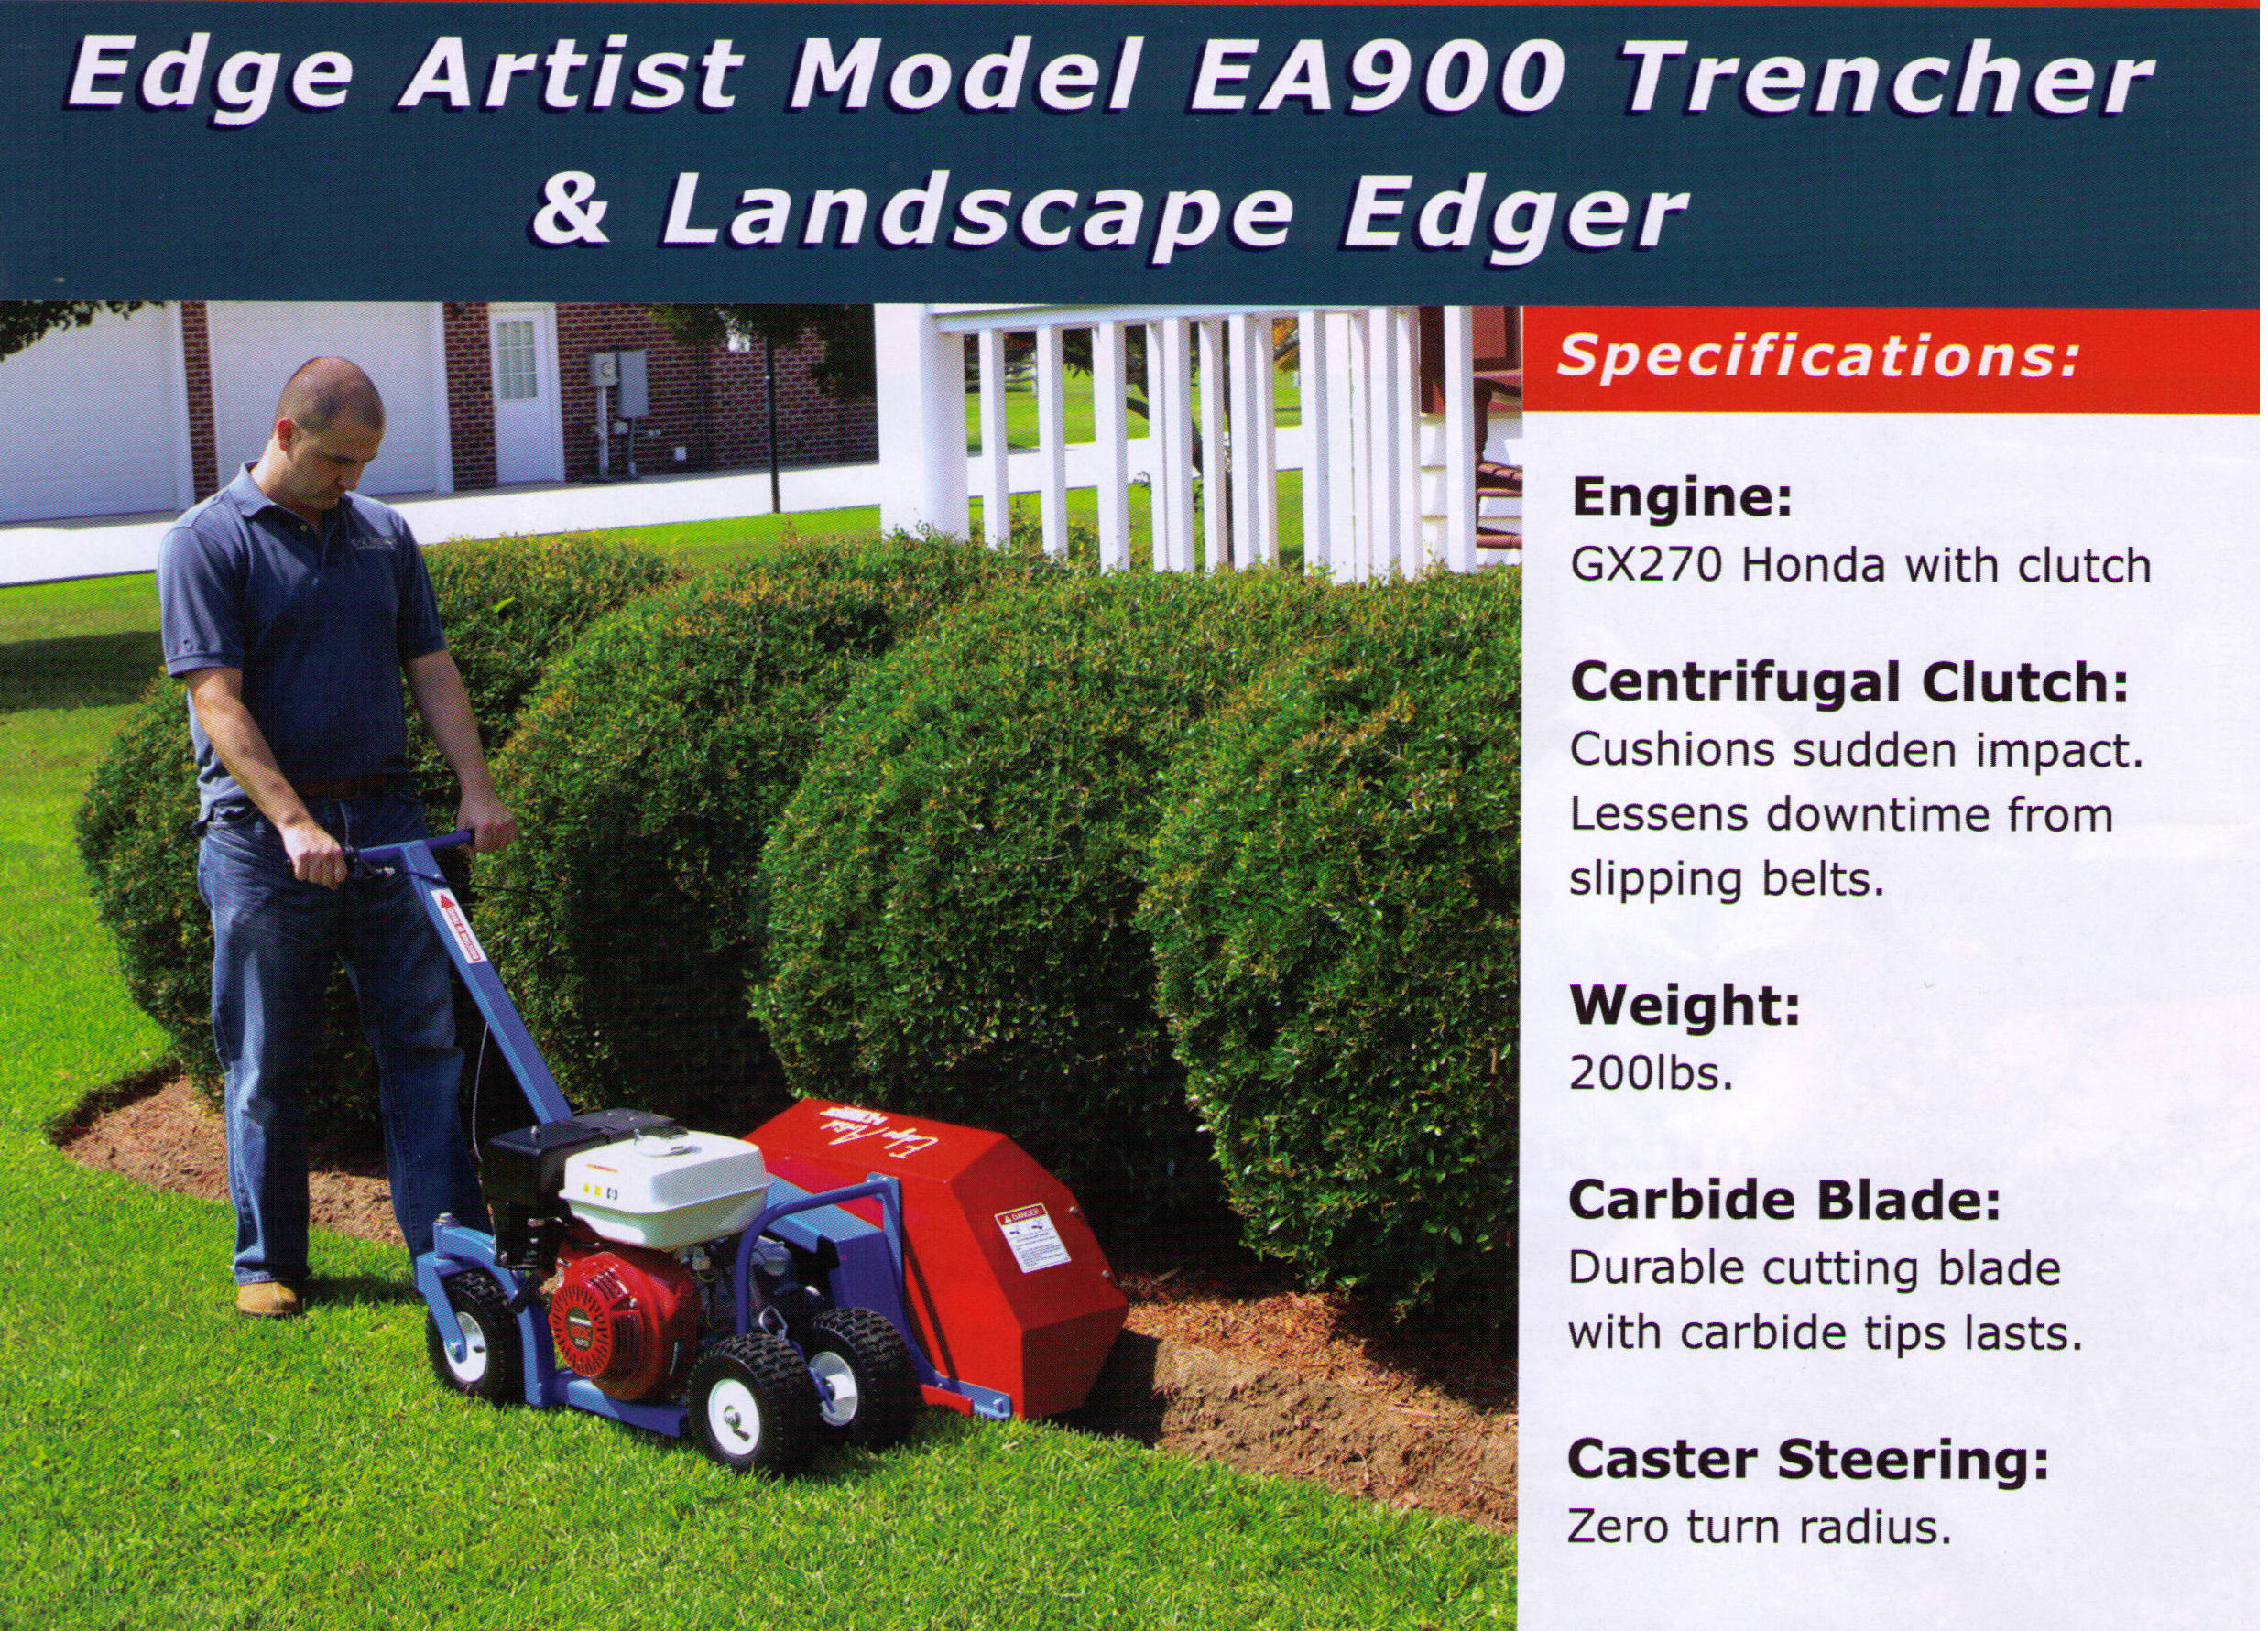 edge artist ea900 model landscape edger can define redifine landscape